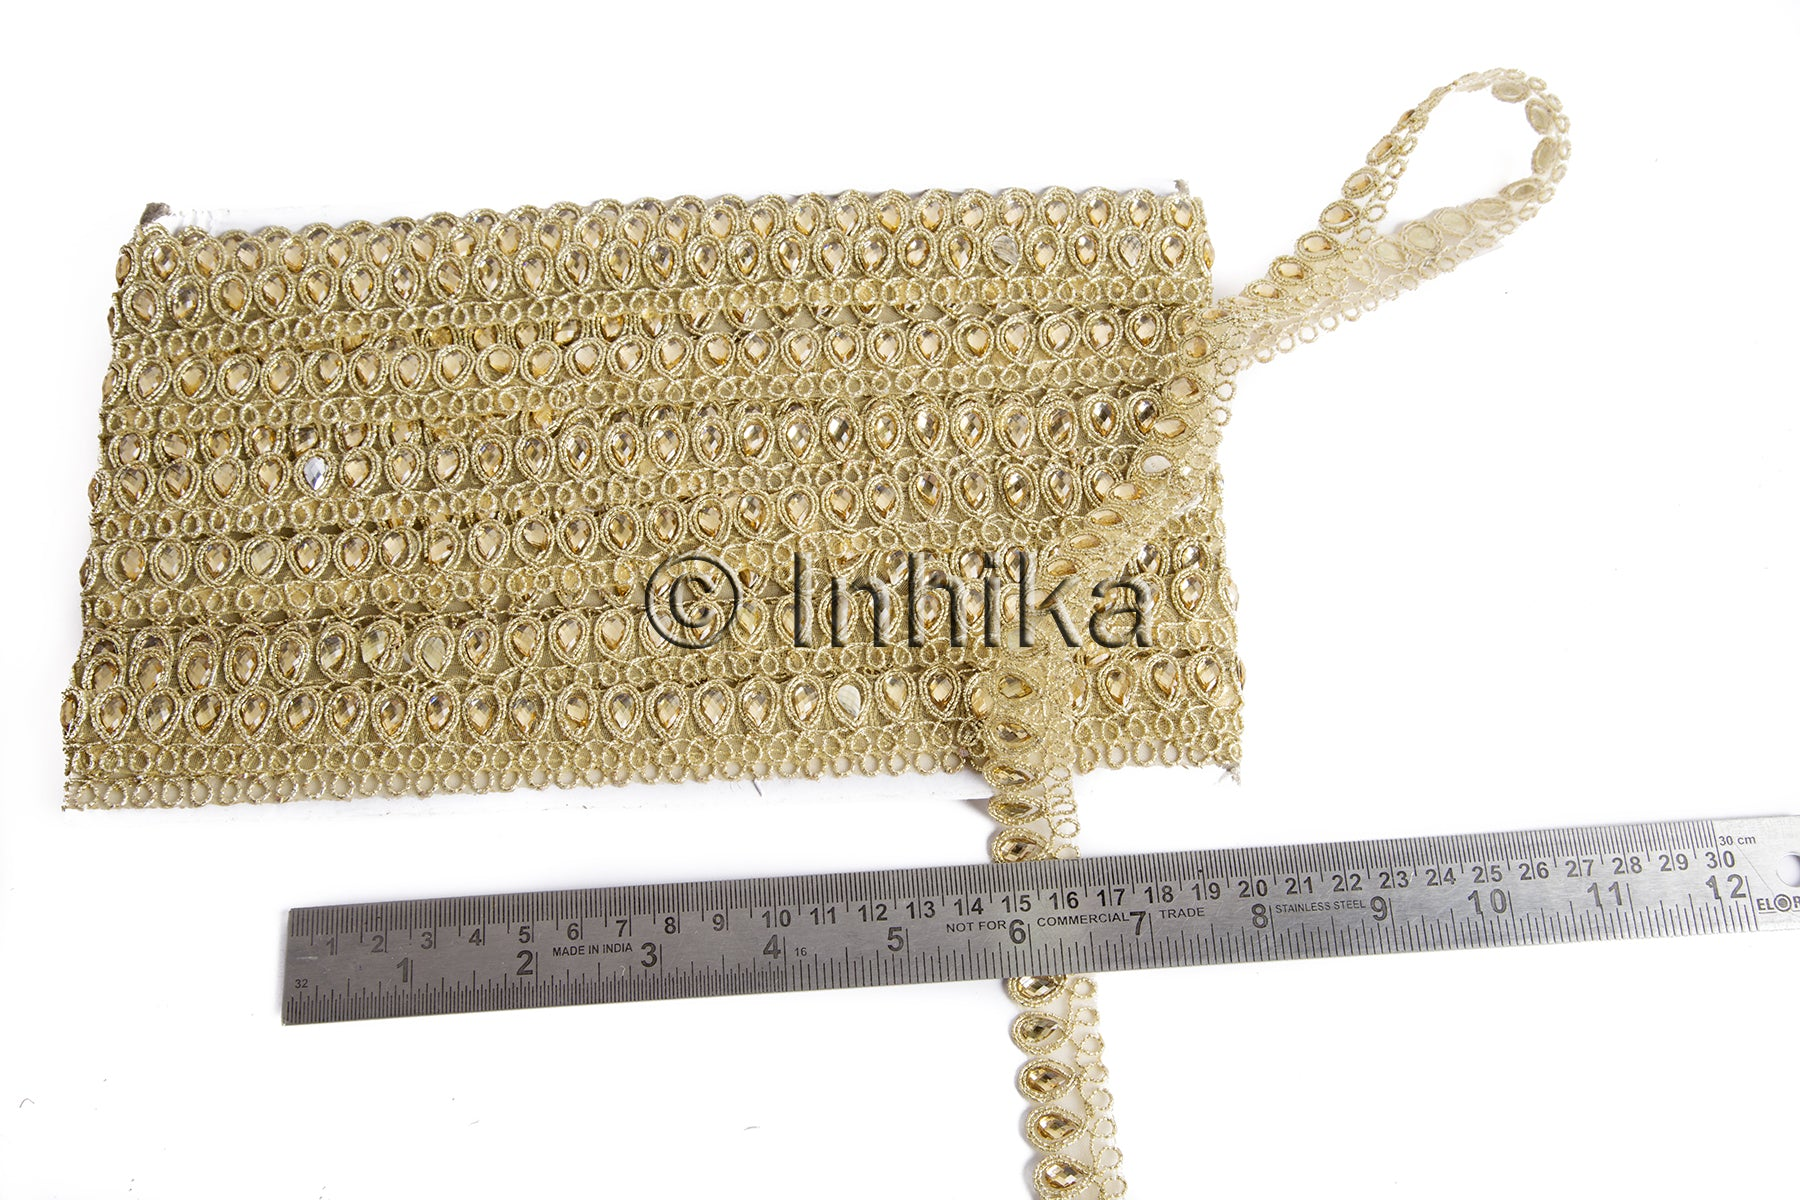 Thin Gold Edging Beaded Lace Trim | Tissue Fabric | .75 inch wide | 9 Meter Roll - Inhika.com